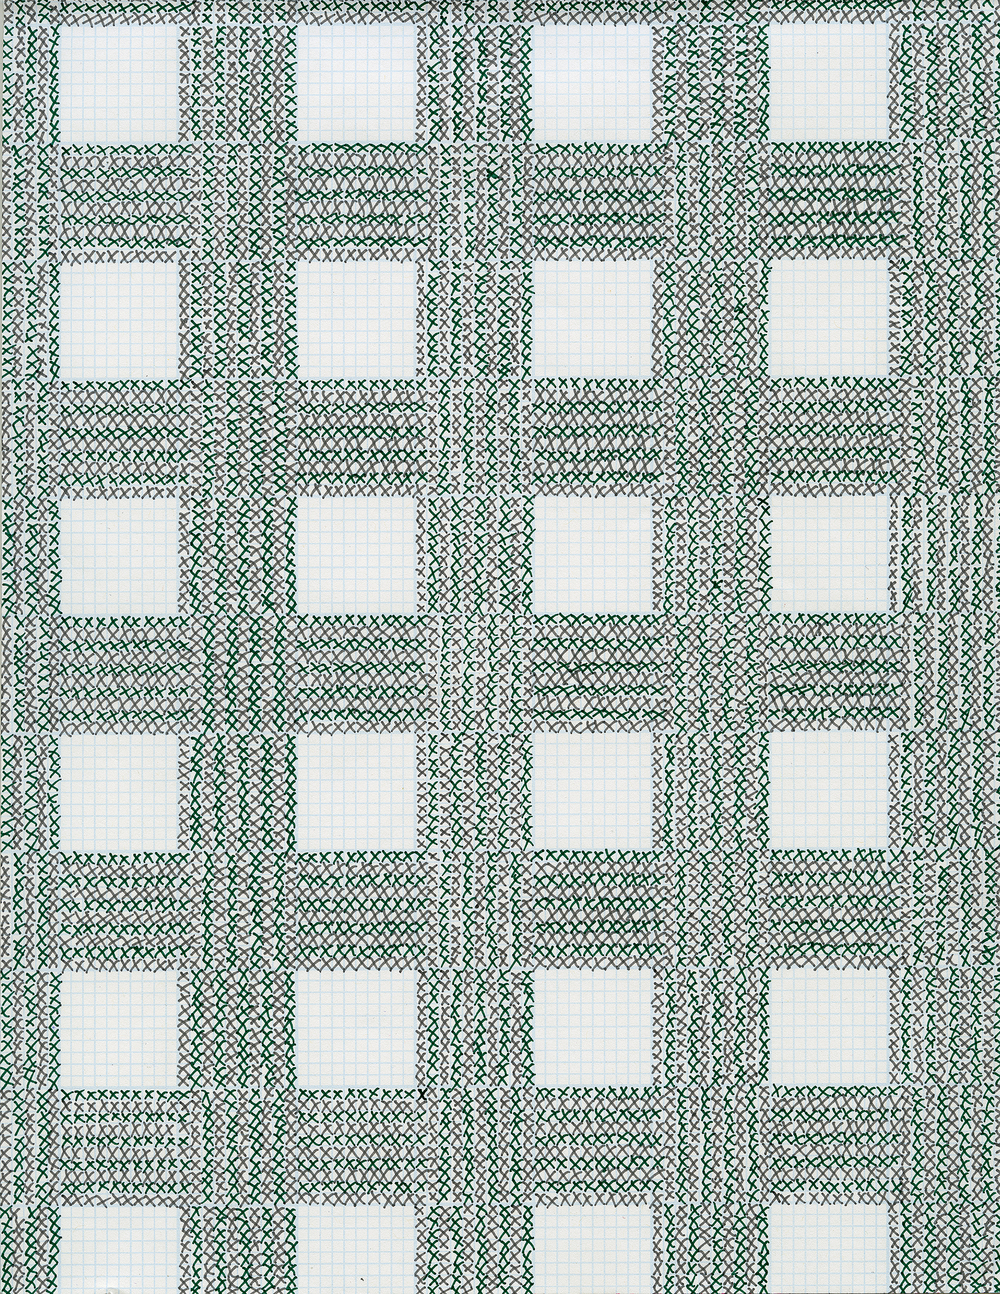 Pen and Ink on Graph Paper, 2016, 11 x 8.5 inches